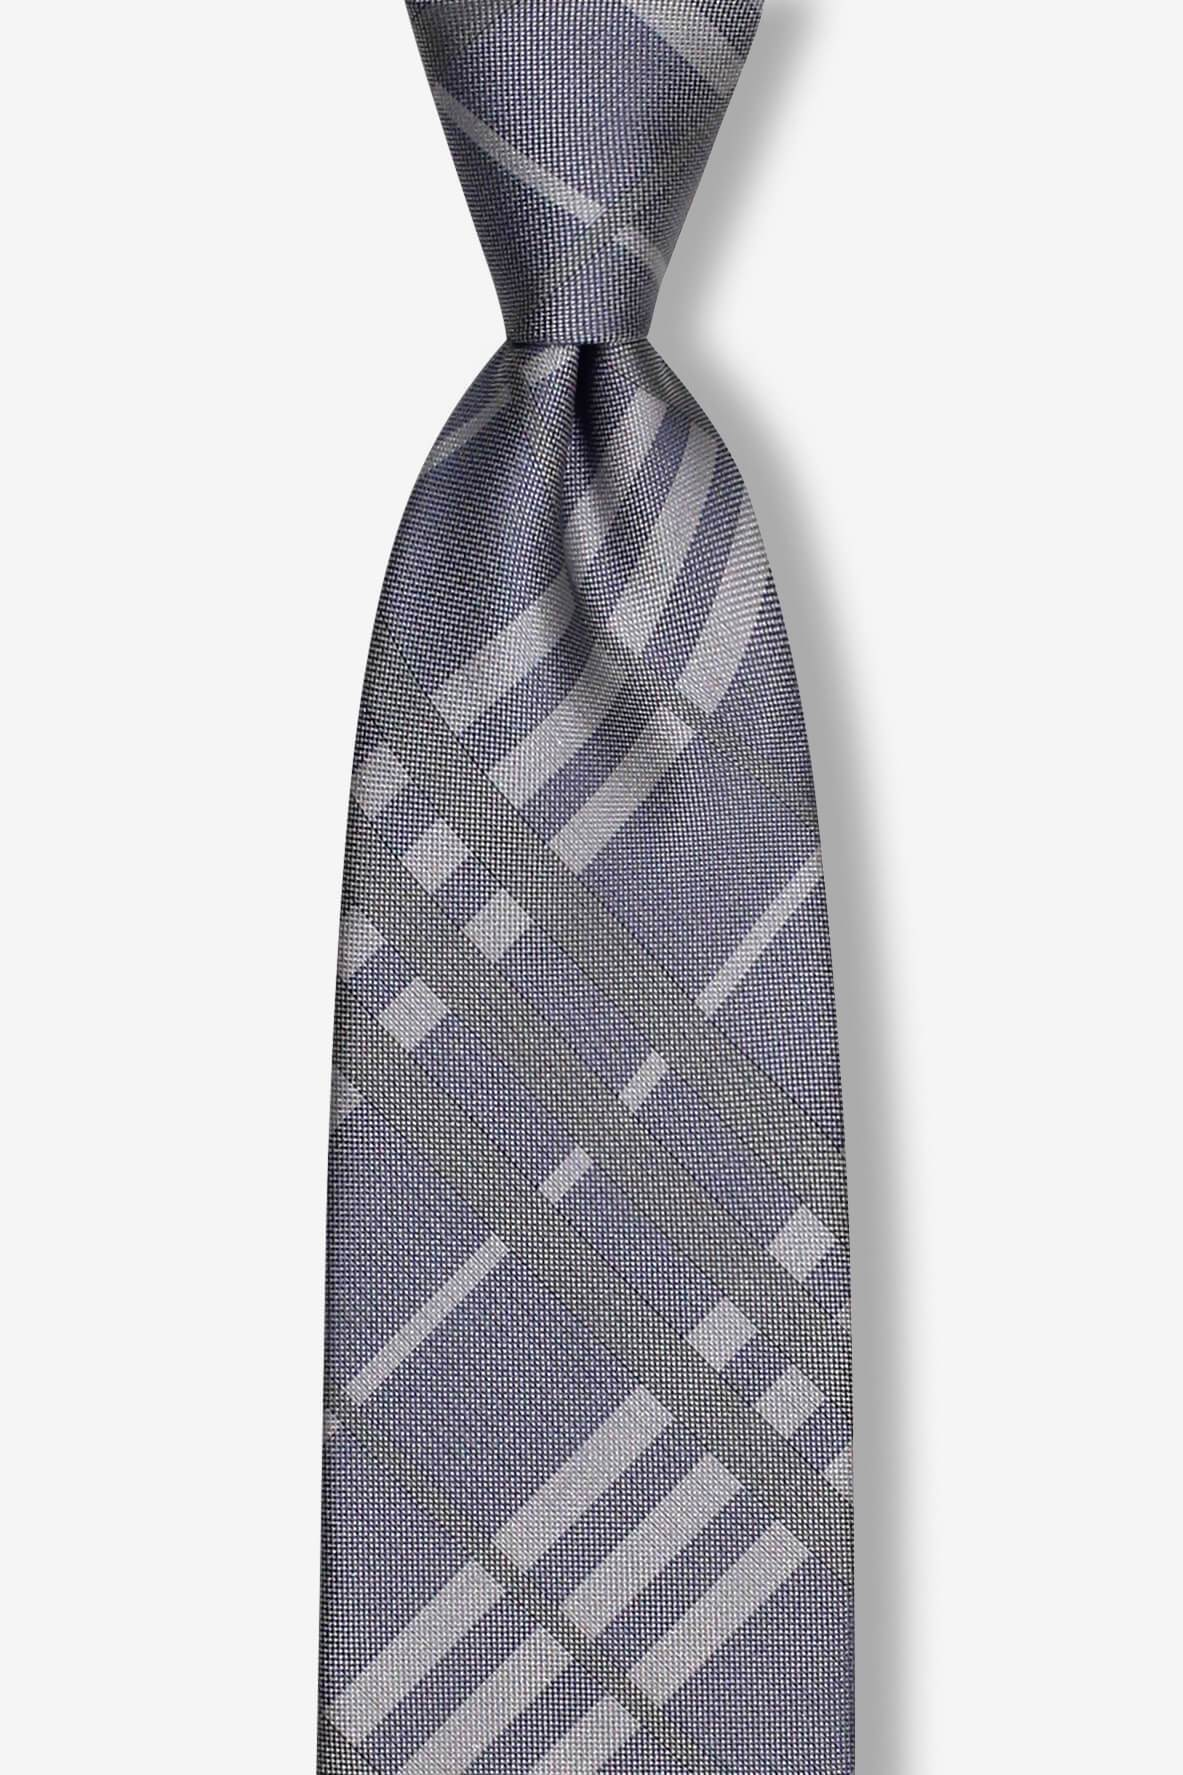 Light Purple and Gray Plaid Pre-tied Tie, Tie, GoTie